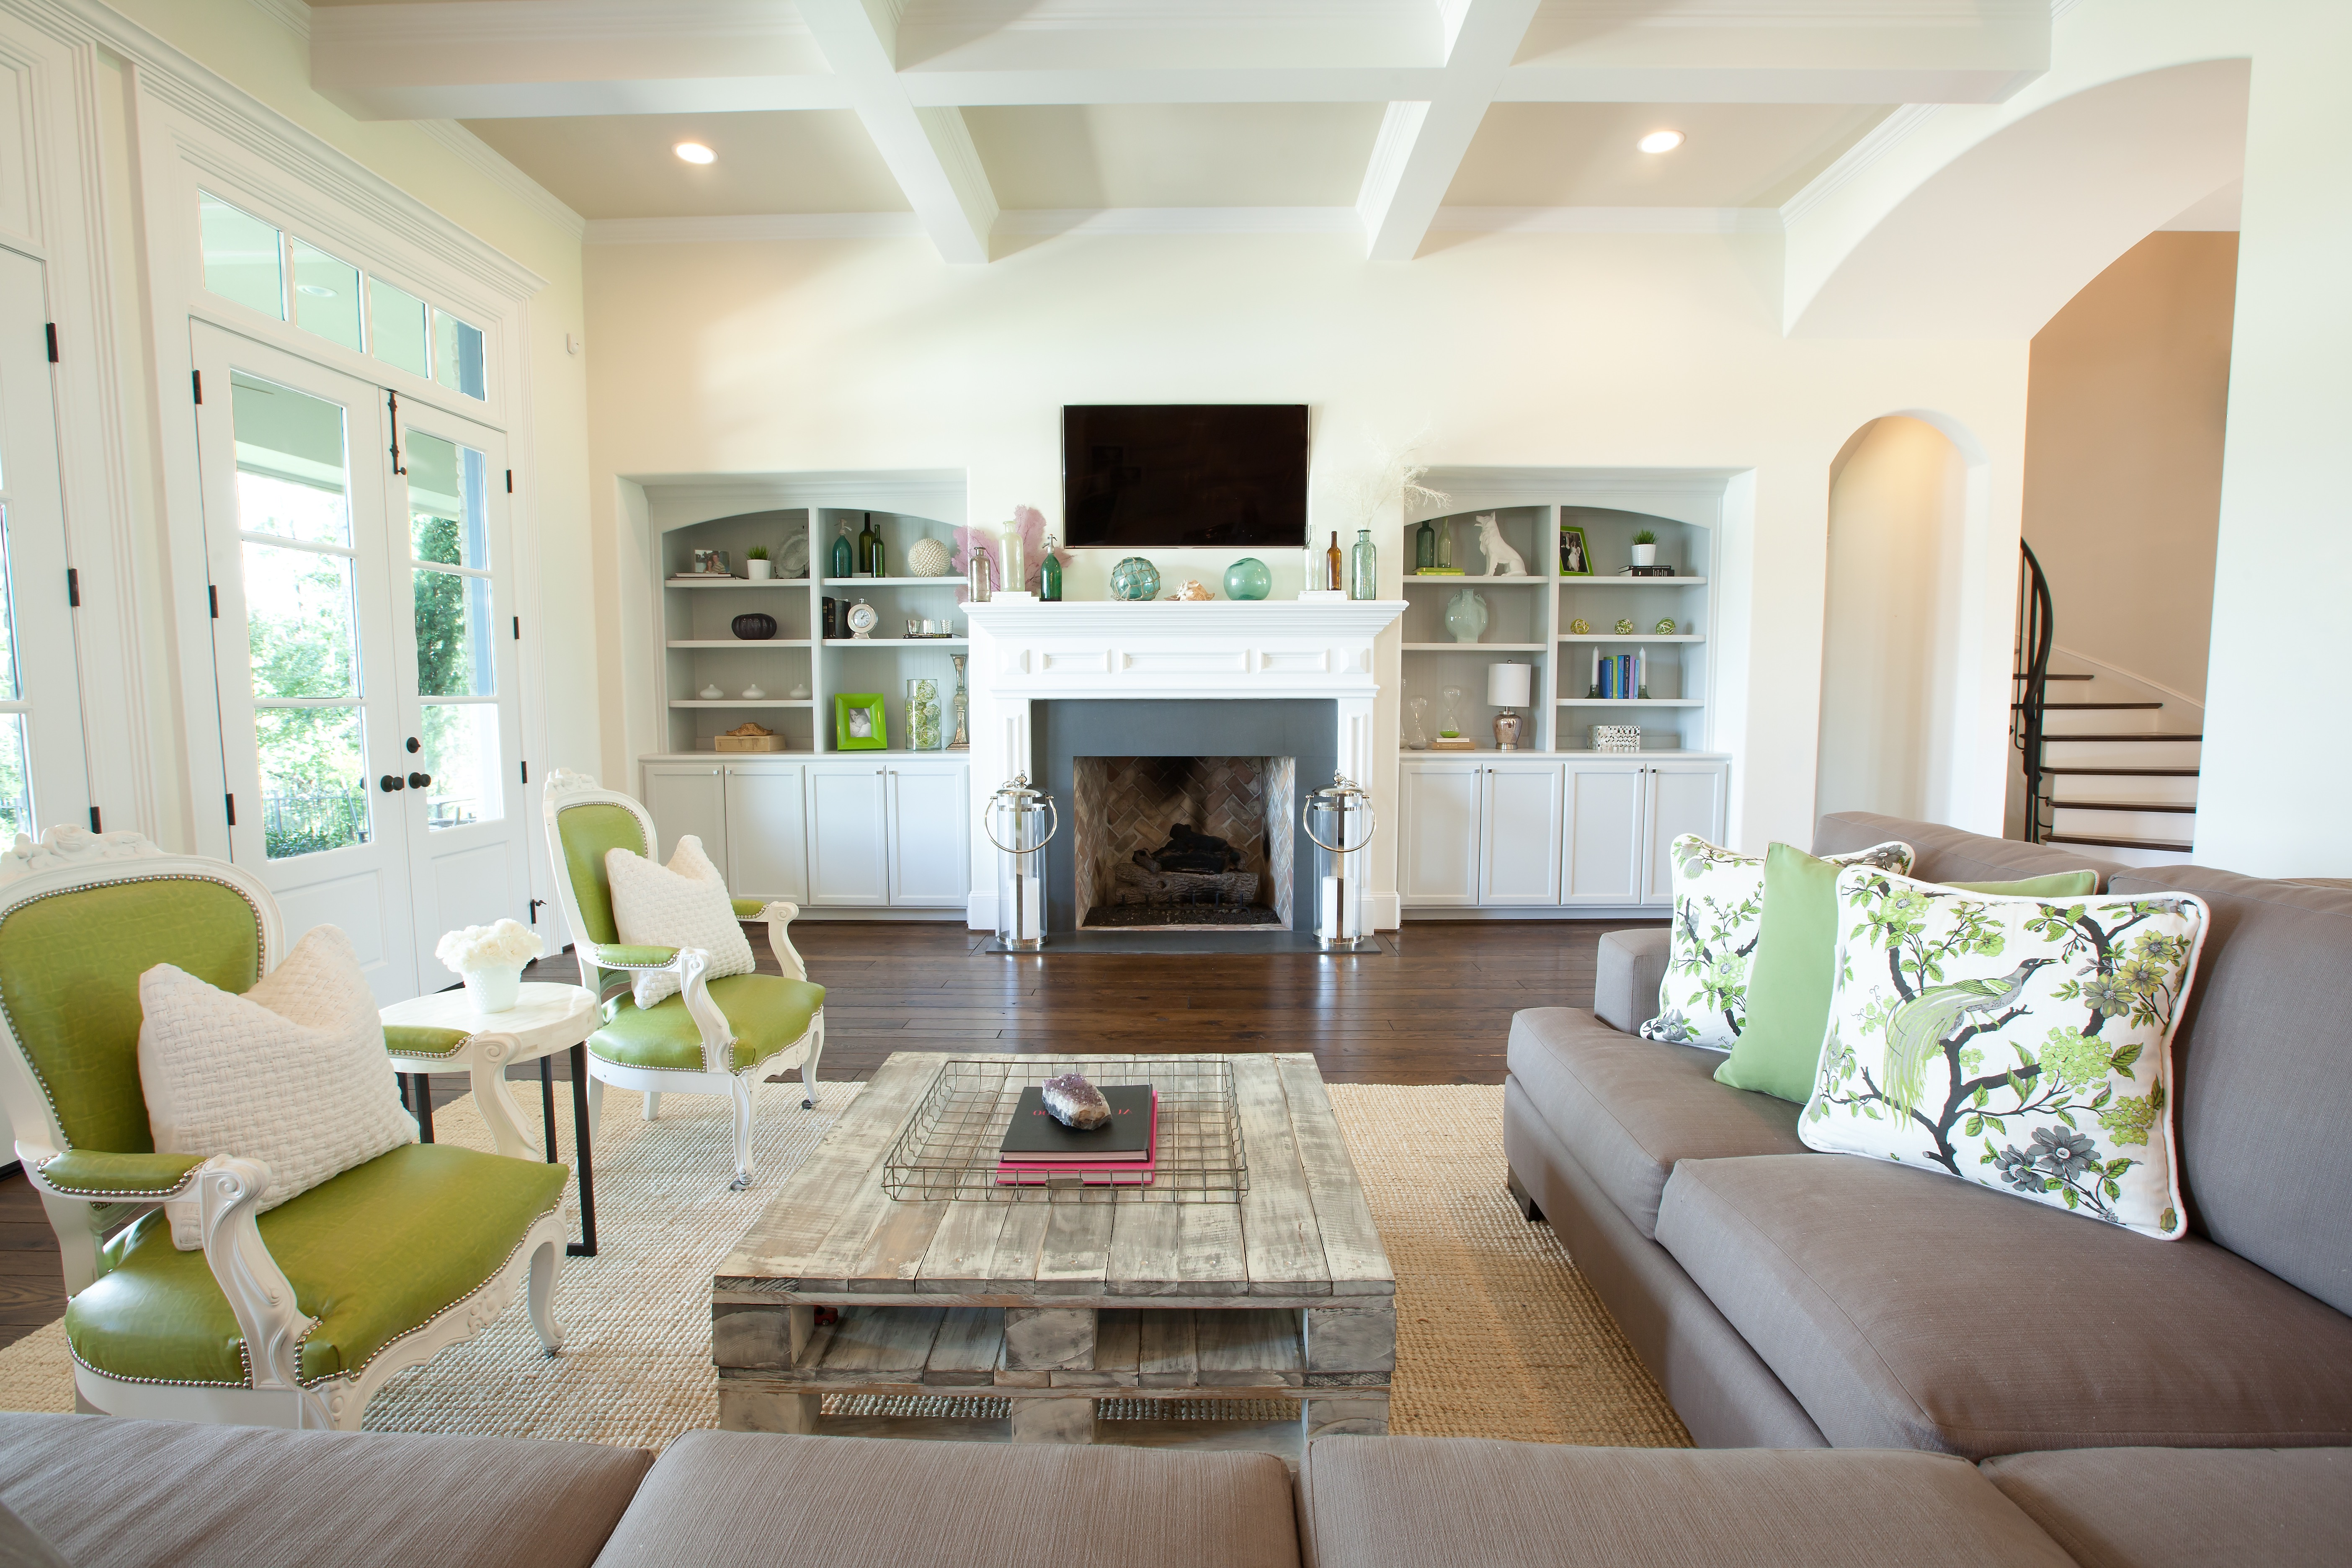 Western Living Room In Bright White Color Scheme (View 10 of 18)